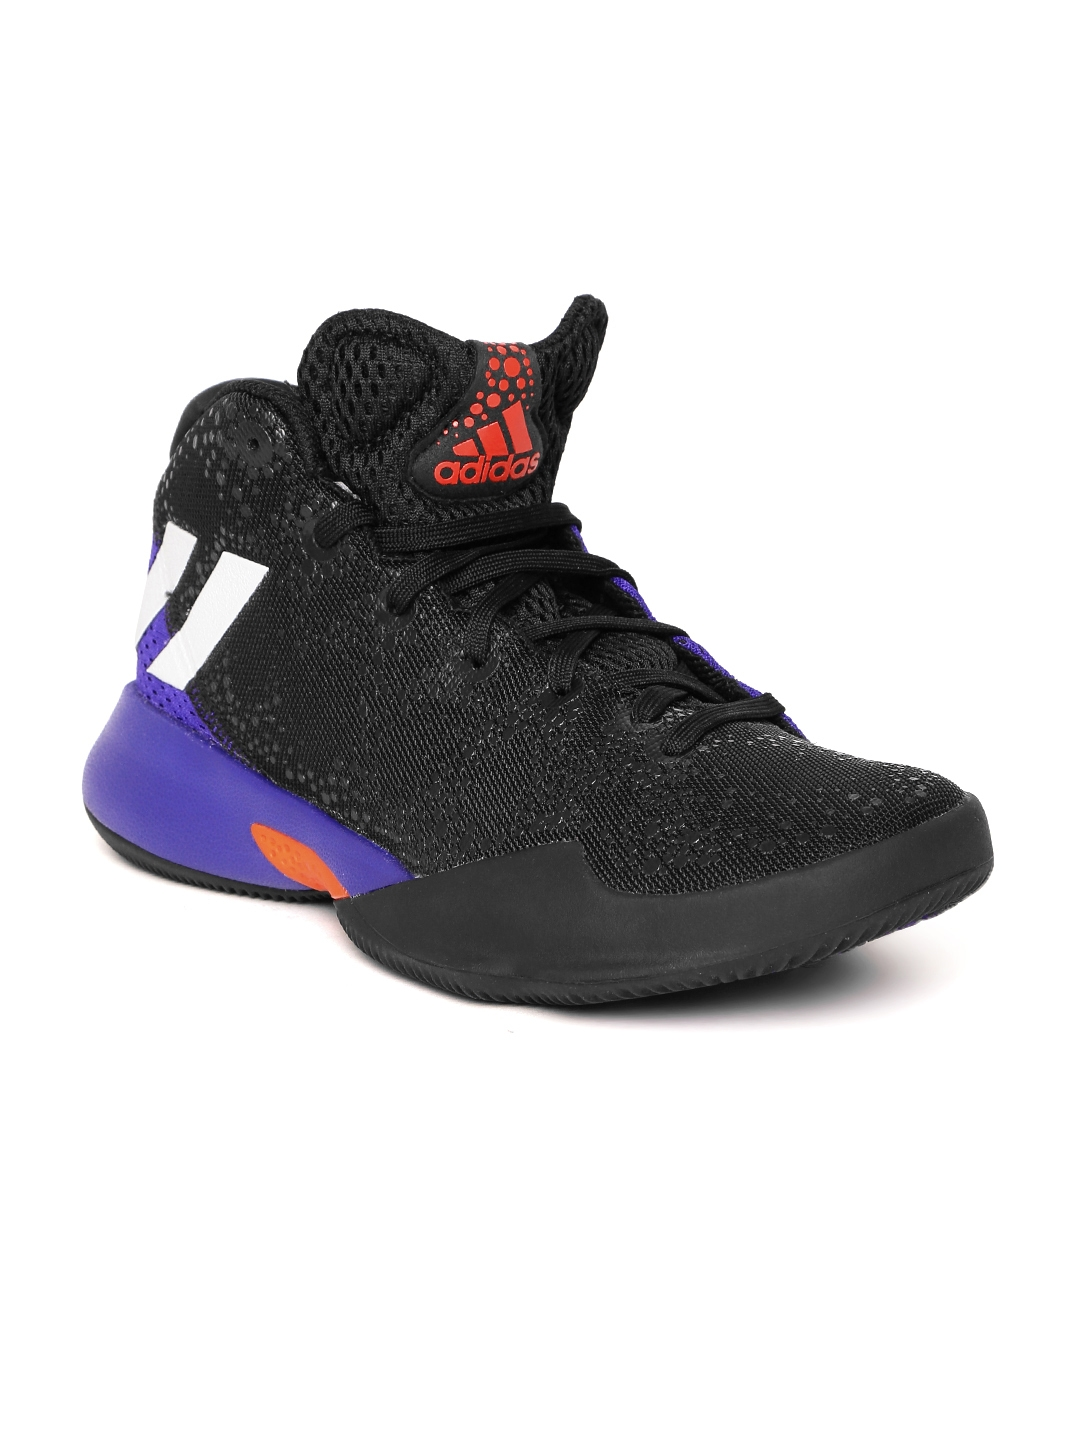 5d52ad498493 Buy ADIDAS Kids Black   Purple Crazy Heat J Basketball Shoes ...